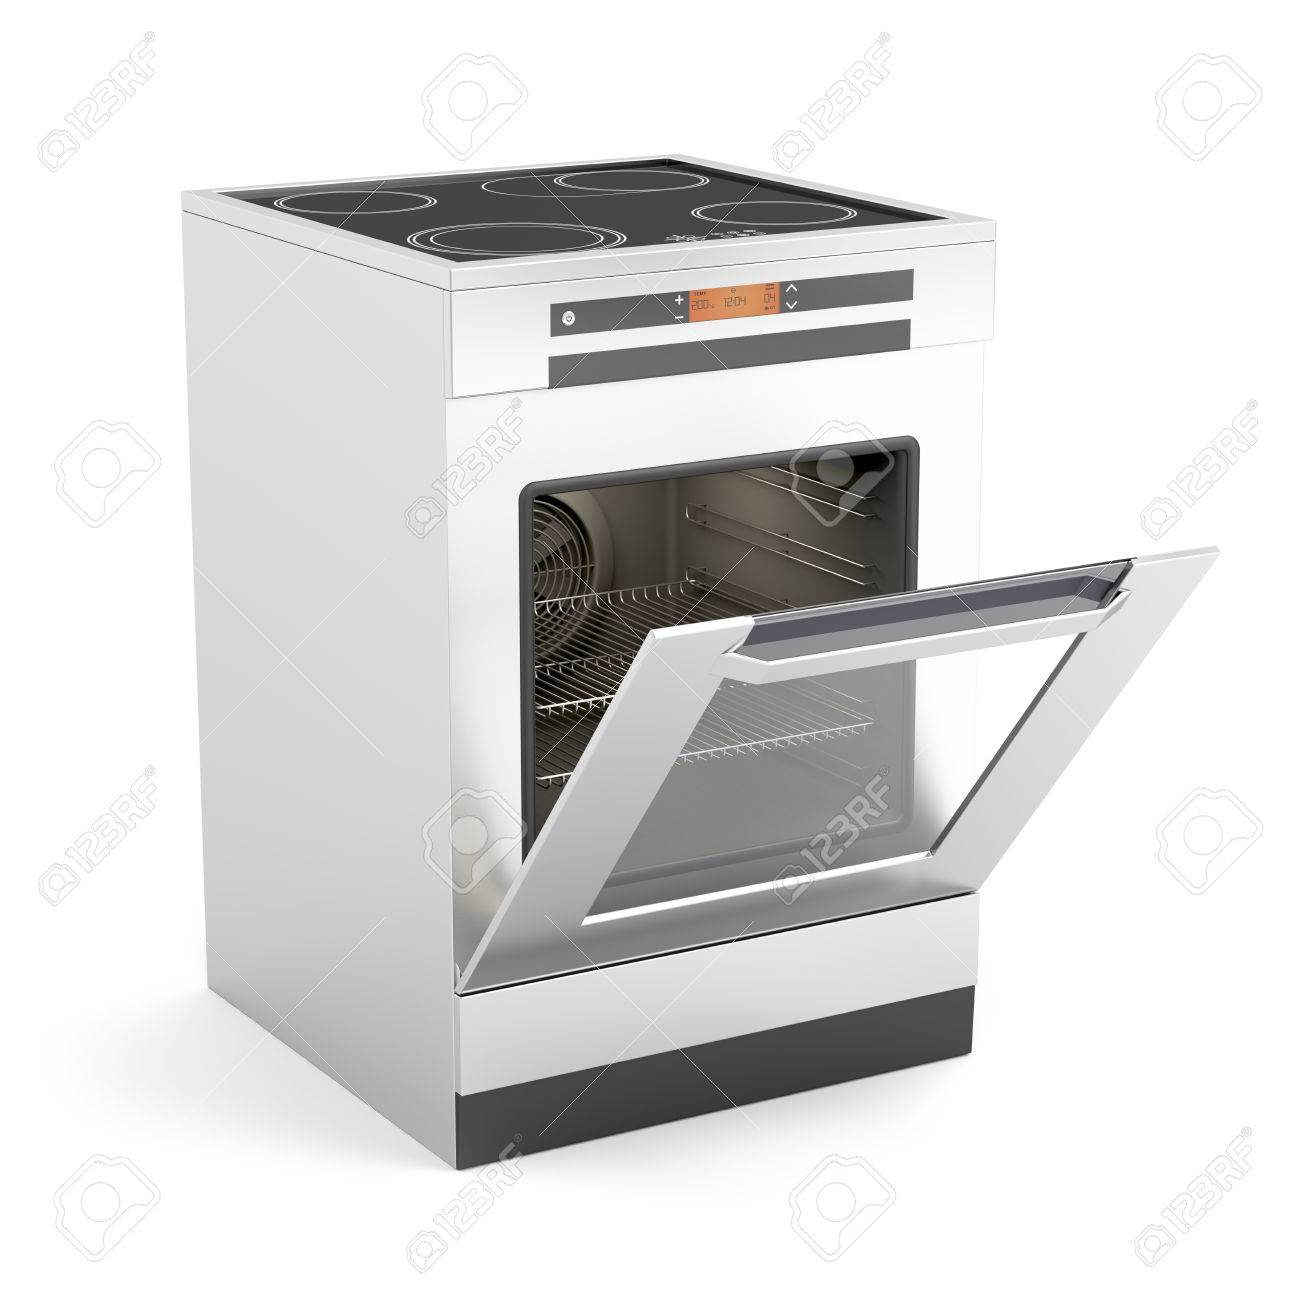 electric stove. Contemporary Electric Modern Electric Stove With Opened Door On White Background      24476128 In Electric Stove